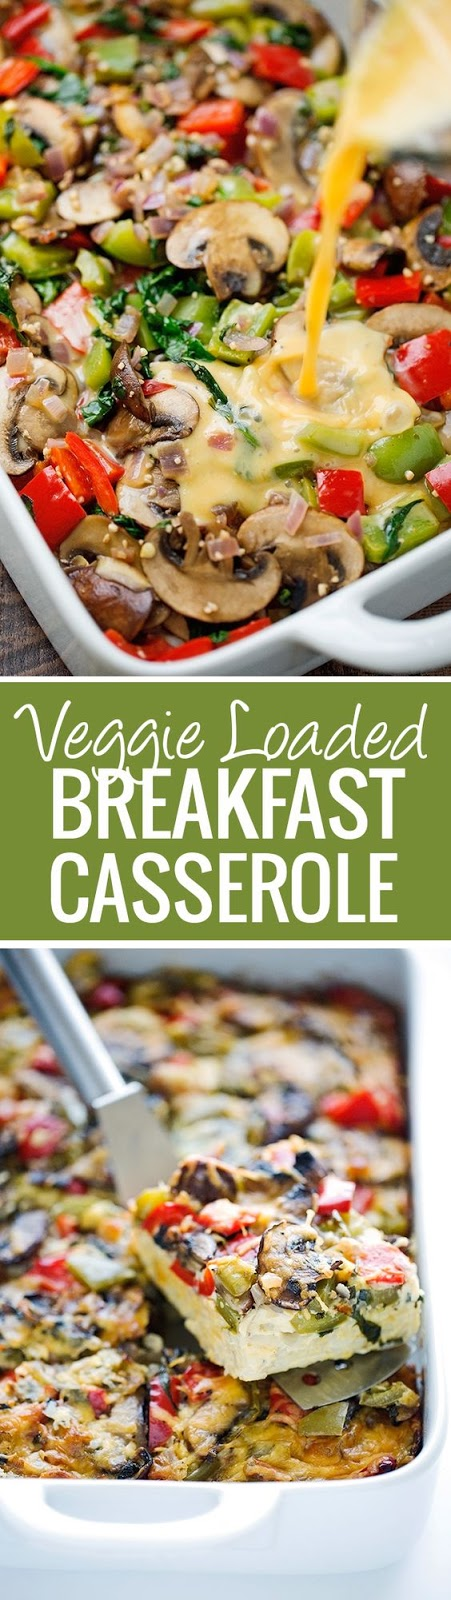 VEGGIE-LOADED BREAKFAST CASSEROLE